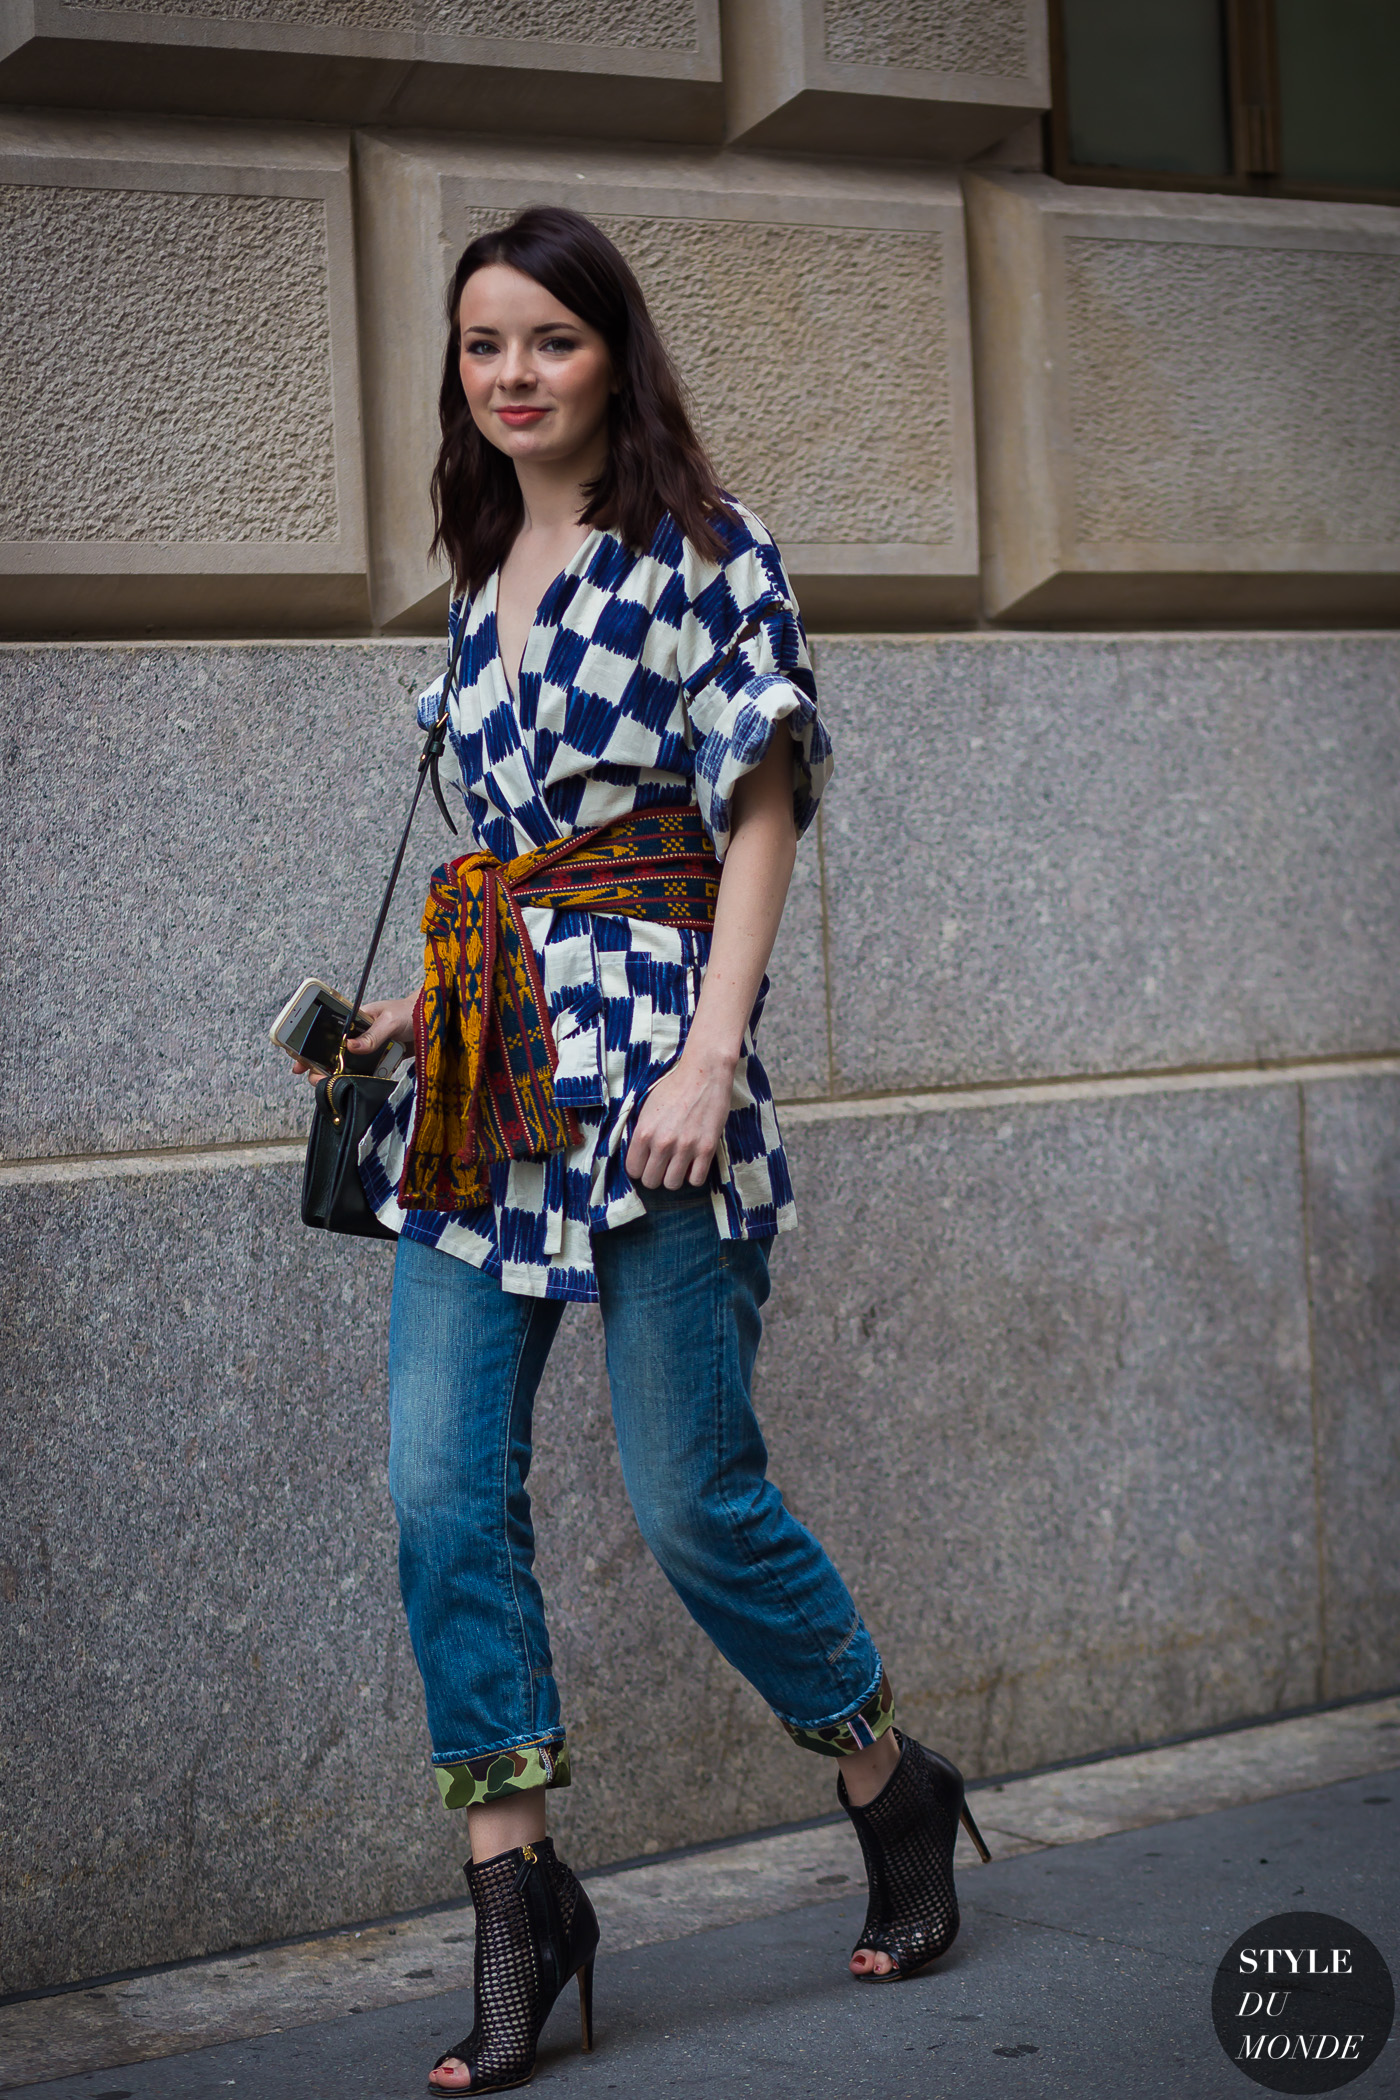 Jane Aldridge Sea of shoes Street Style Street Fashion Streetsnaps by STYLEDUMONDE Street Style Fashion Photography